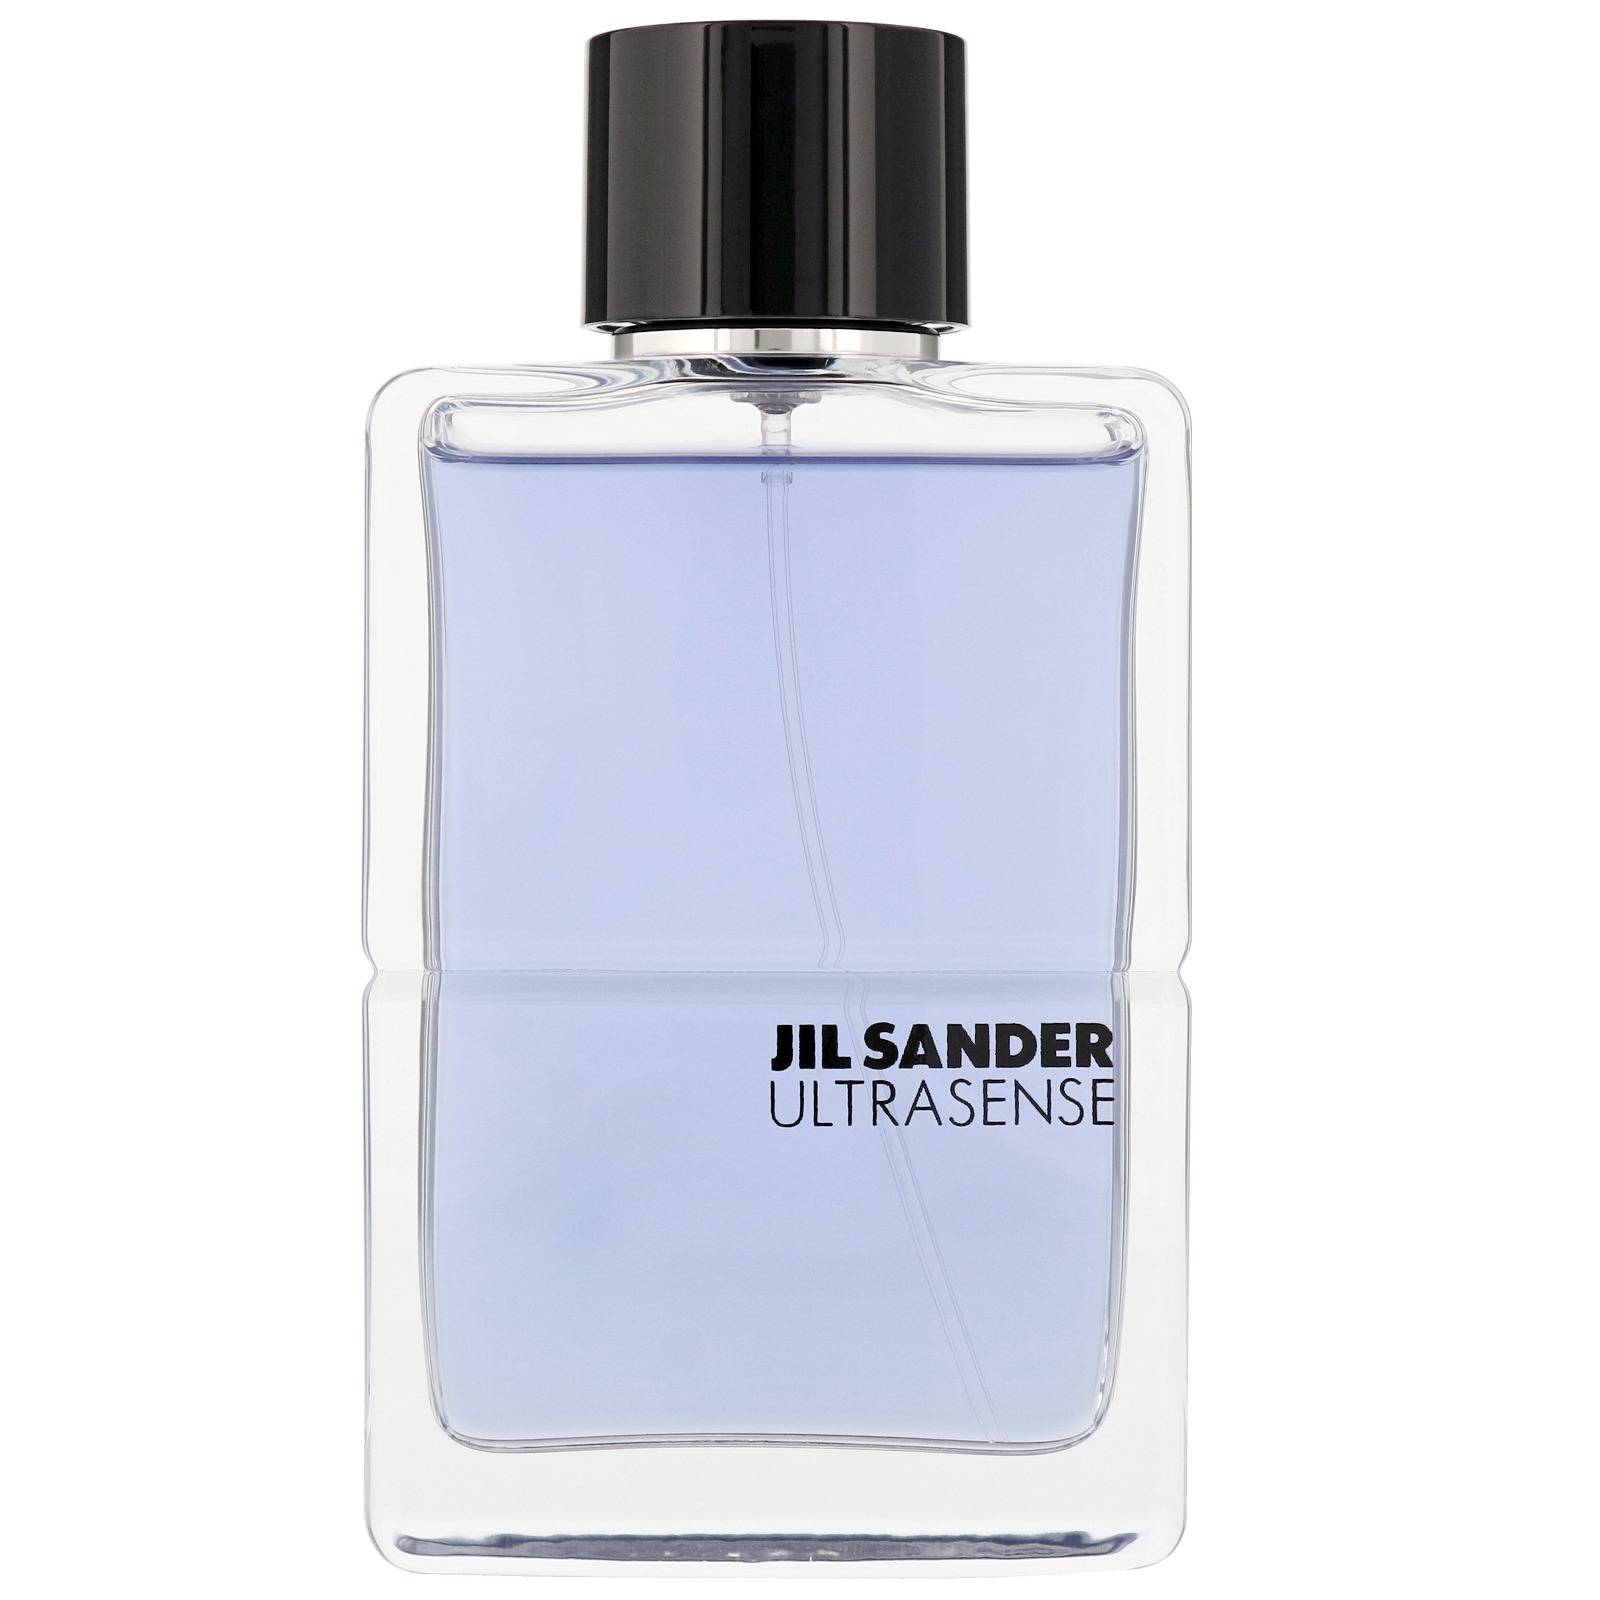 Jil Sander Ultrasense 100ml Aftershave